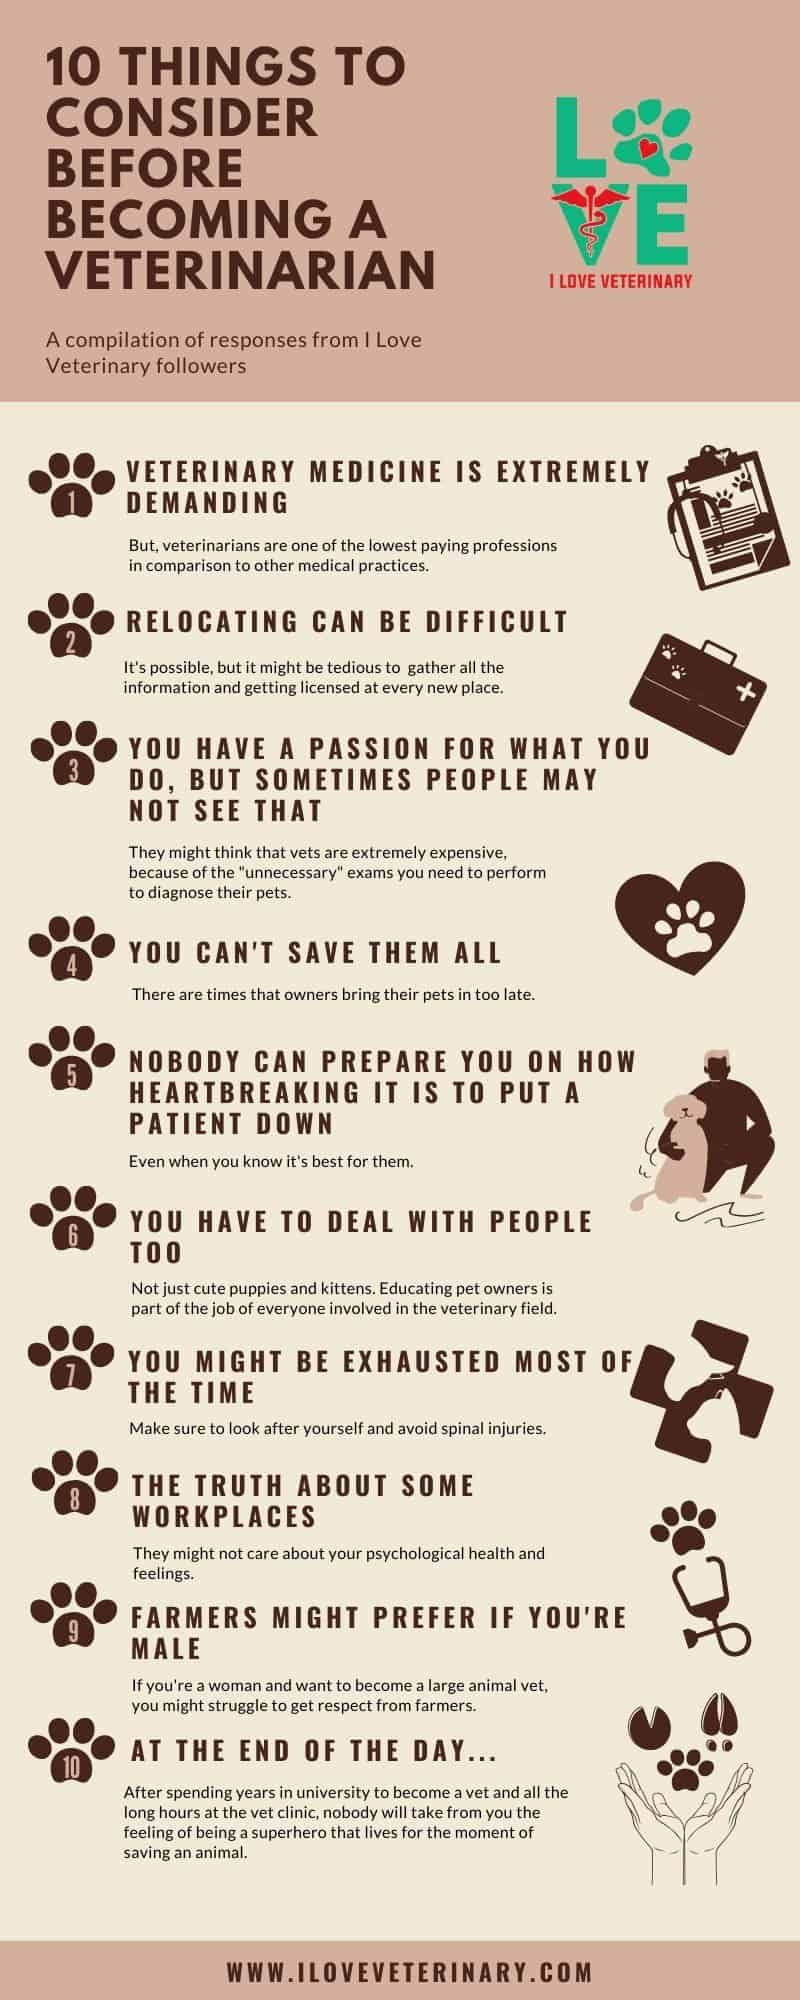 10 Things To Consider Before Becoming A Veterinarian I Love Veterinary In 2020 Becoming A Veterinarian Veterinarian Veterinary